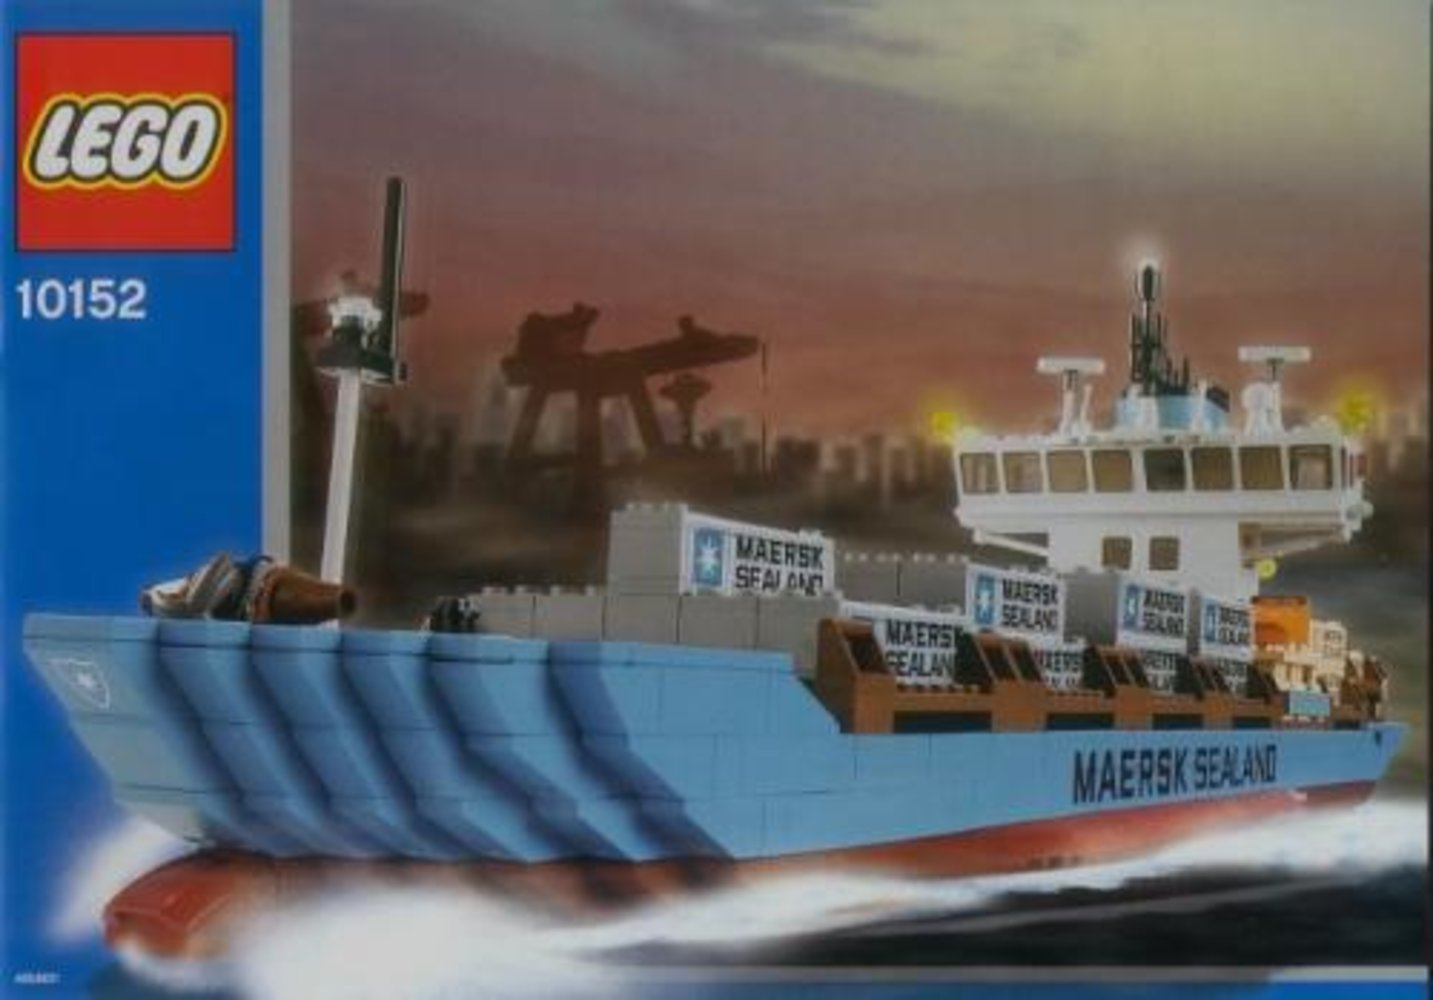 Maersk Line Container Ship 2006 Edition